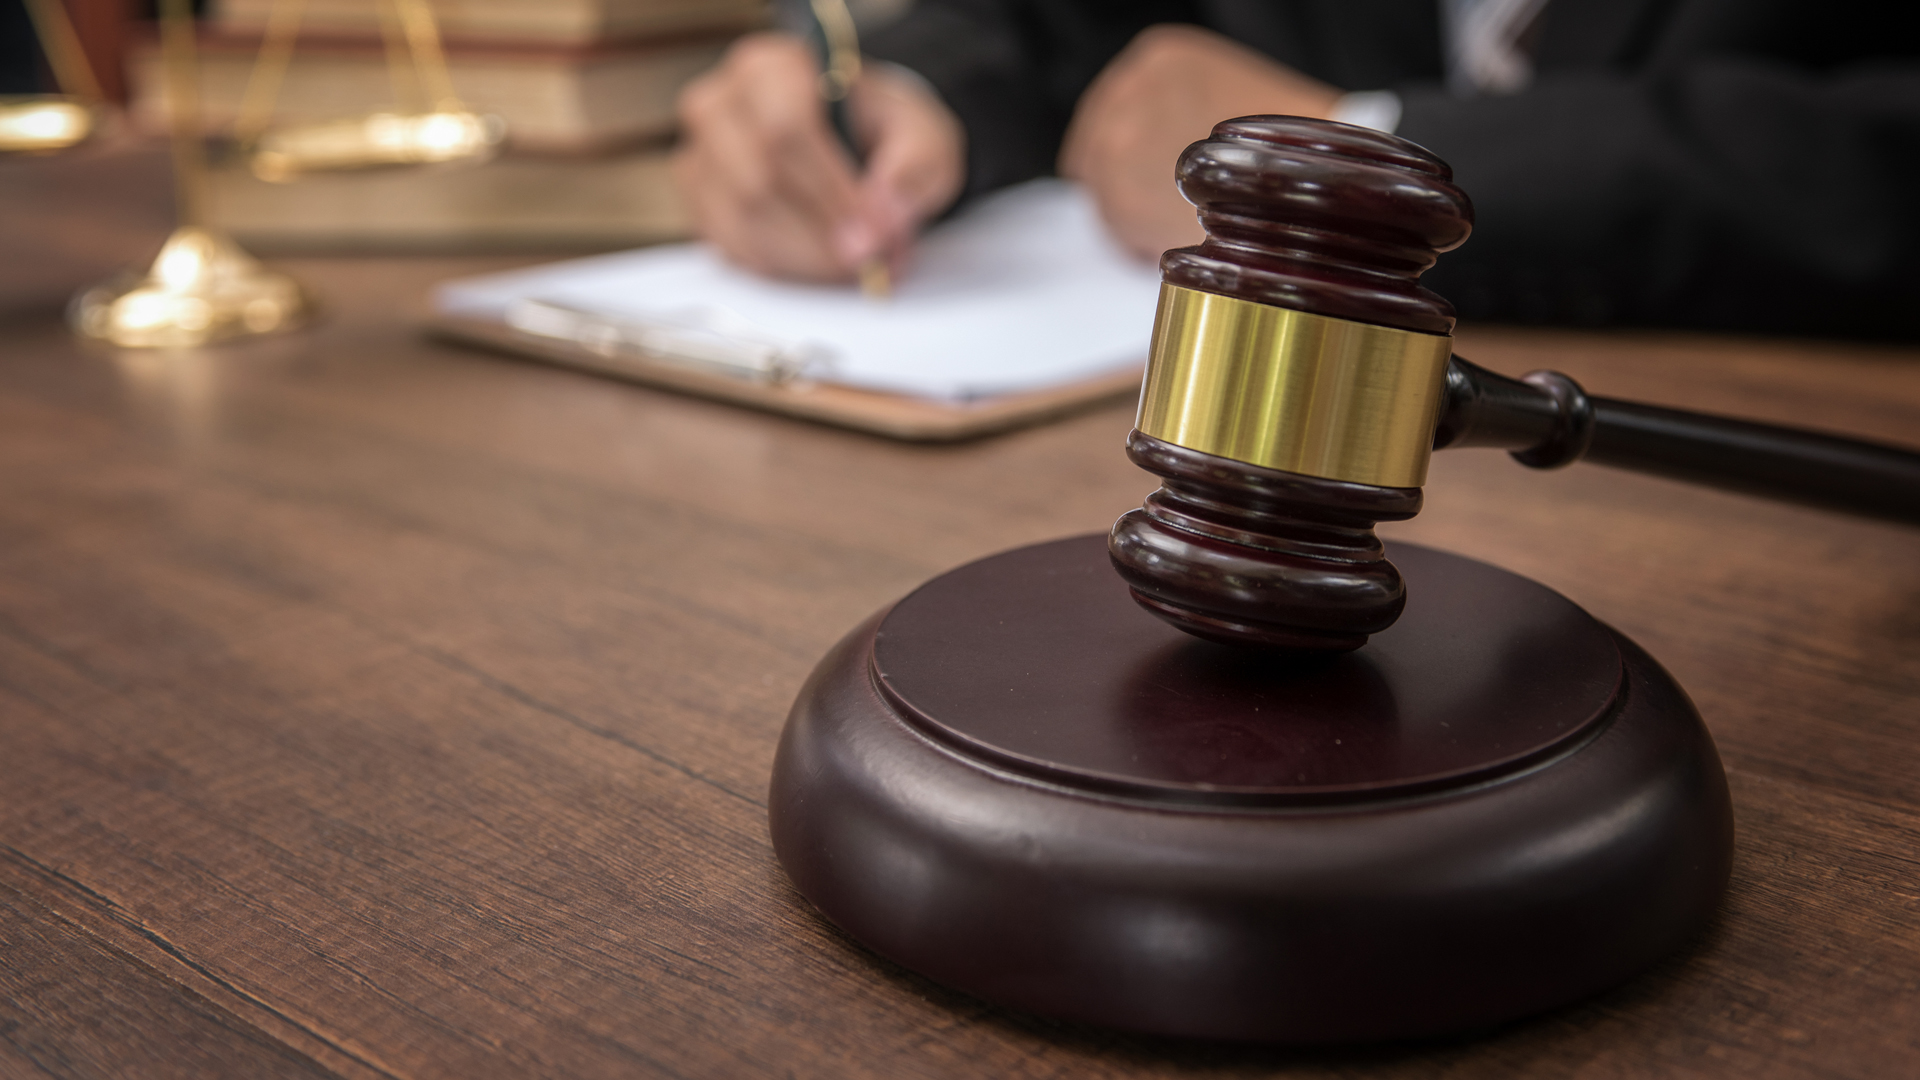 A gavel is seen in a courtroom in this file photo. (Credit: iStock / Getty Images Plus)